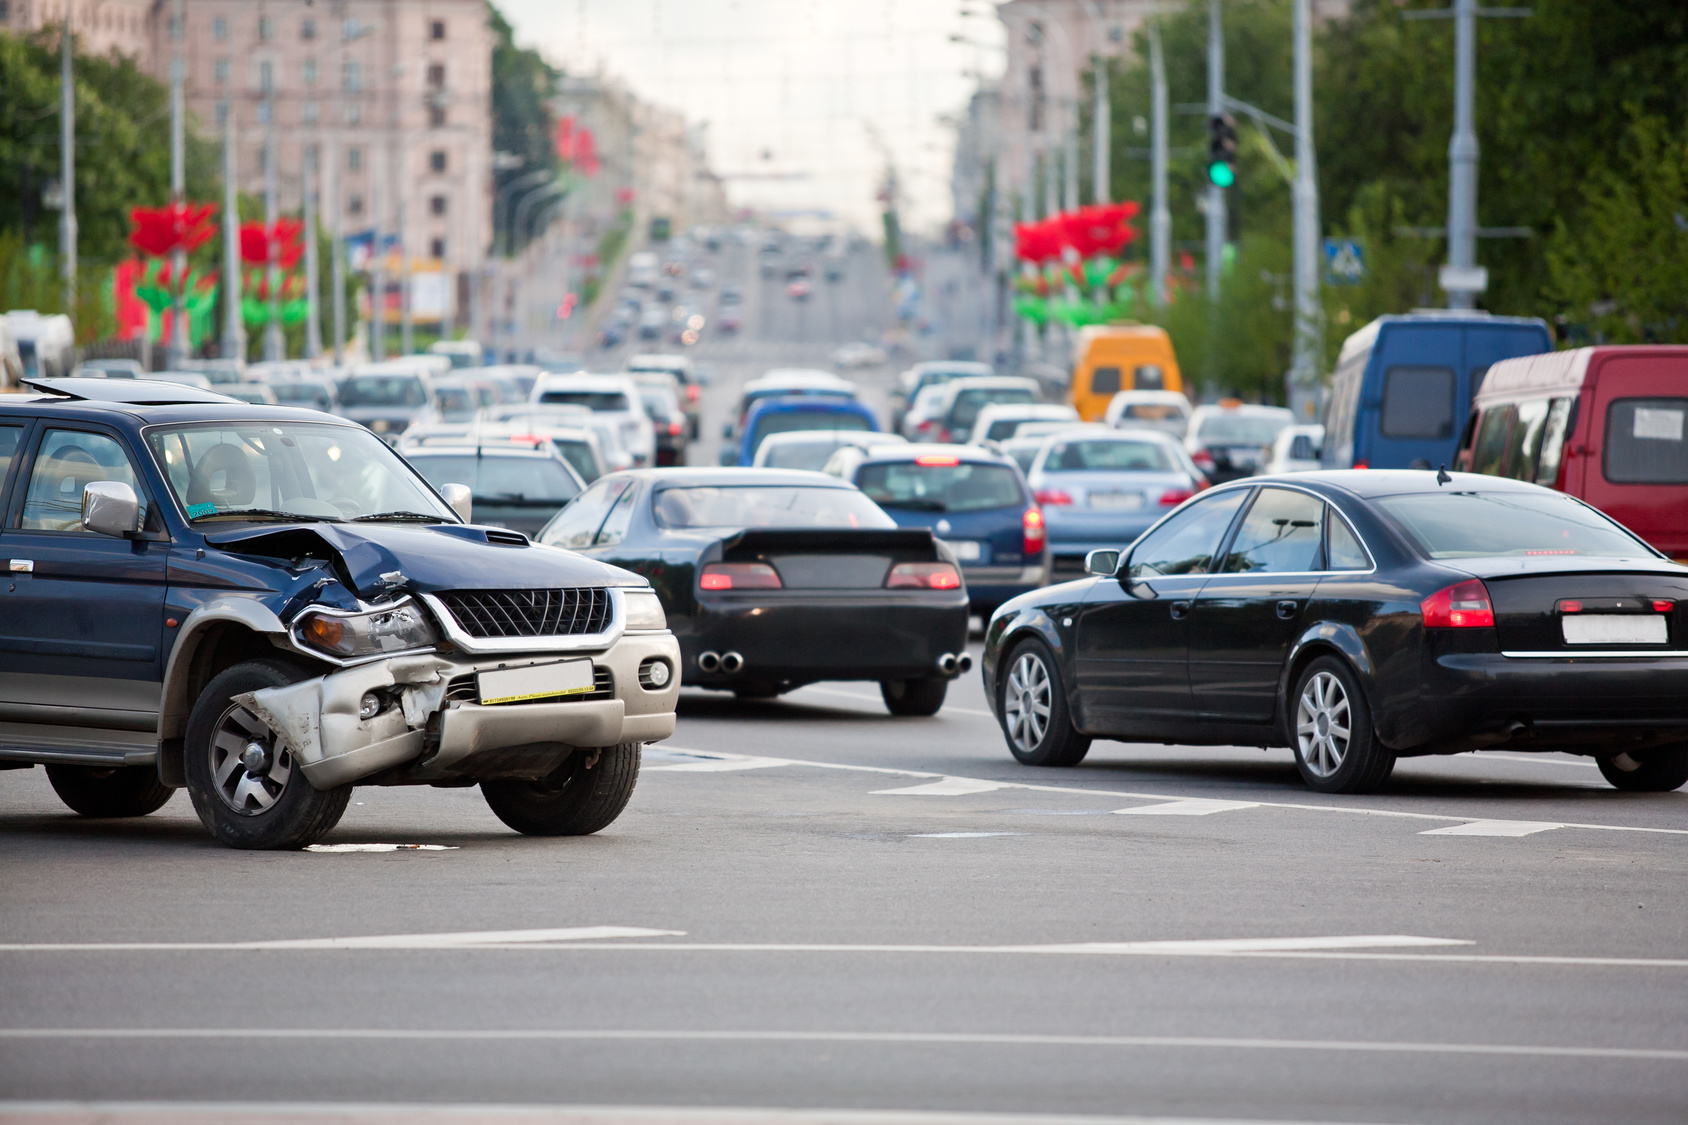 car accident during rush hour and if you have been involved in a multi-car crash and need a good Flint personal injury attorney look here.